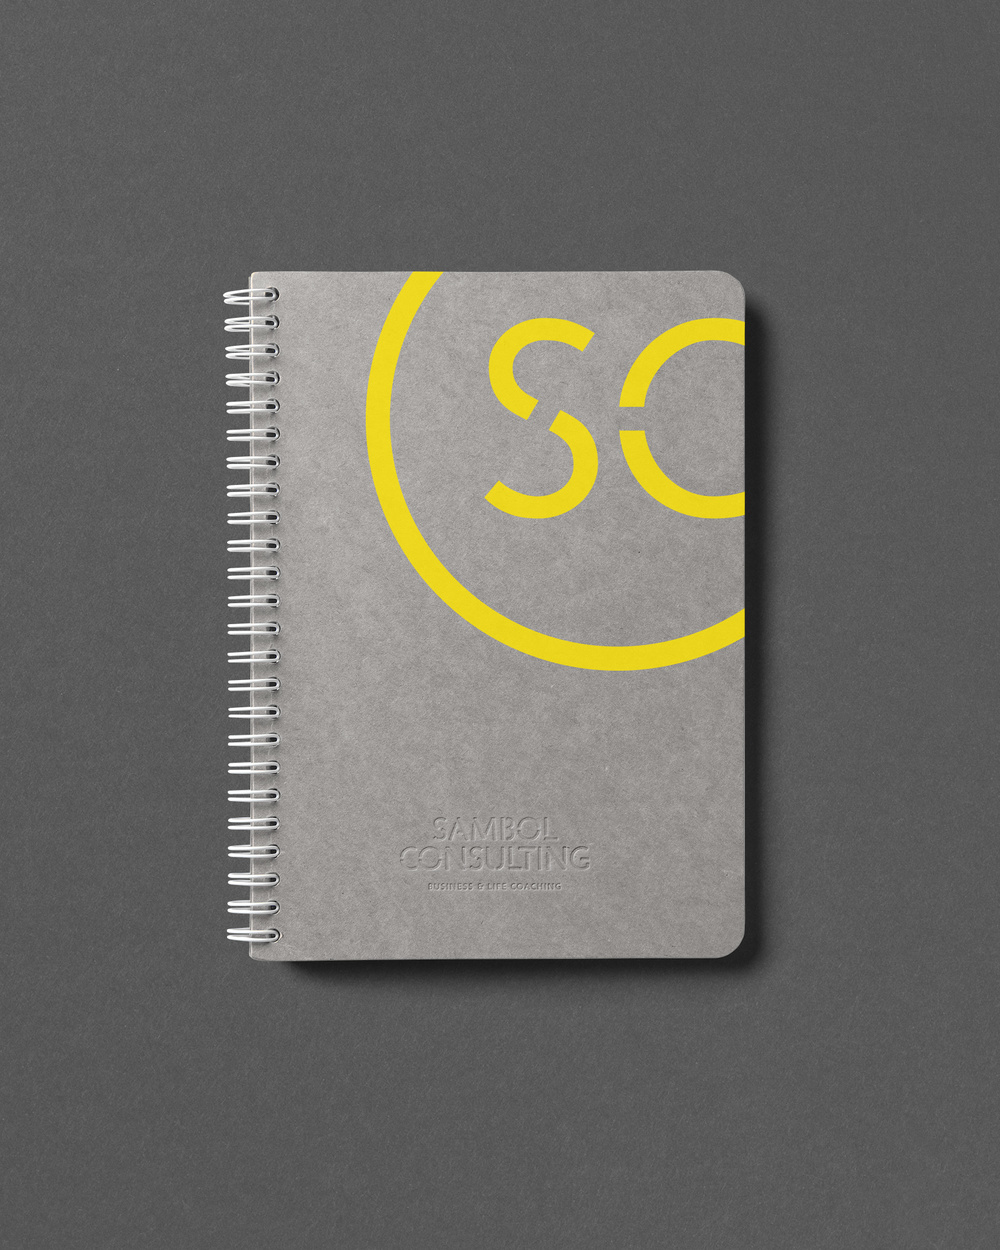 sambol_consulting_notebook.jpg